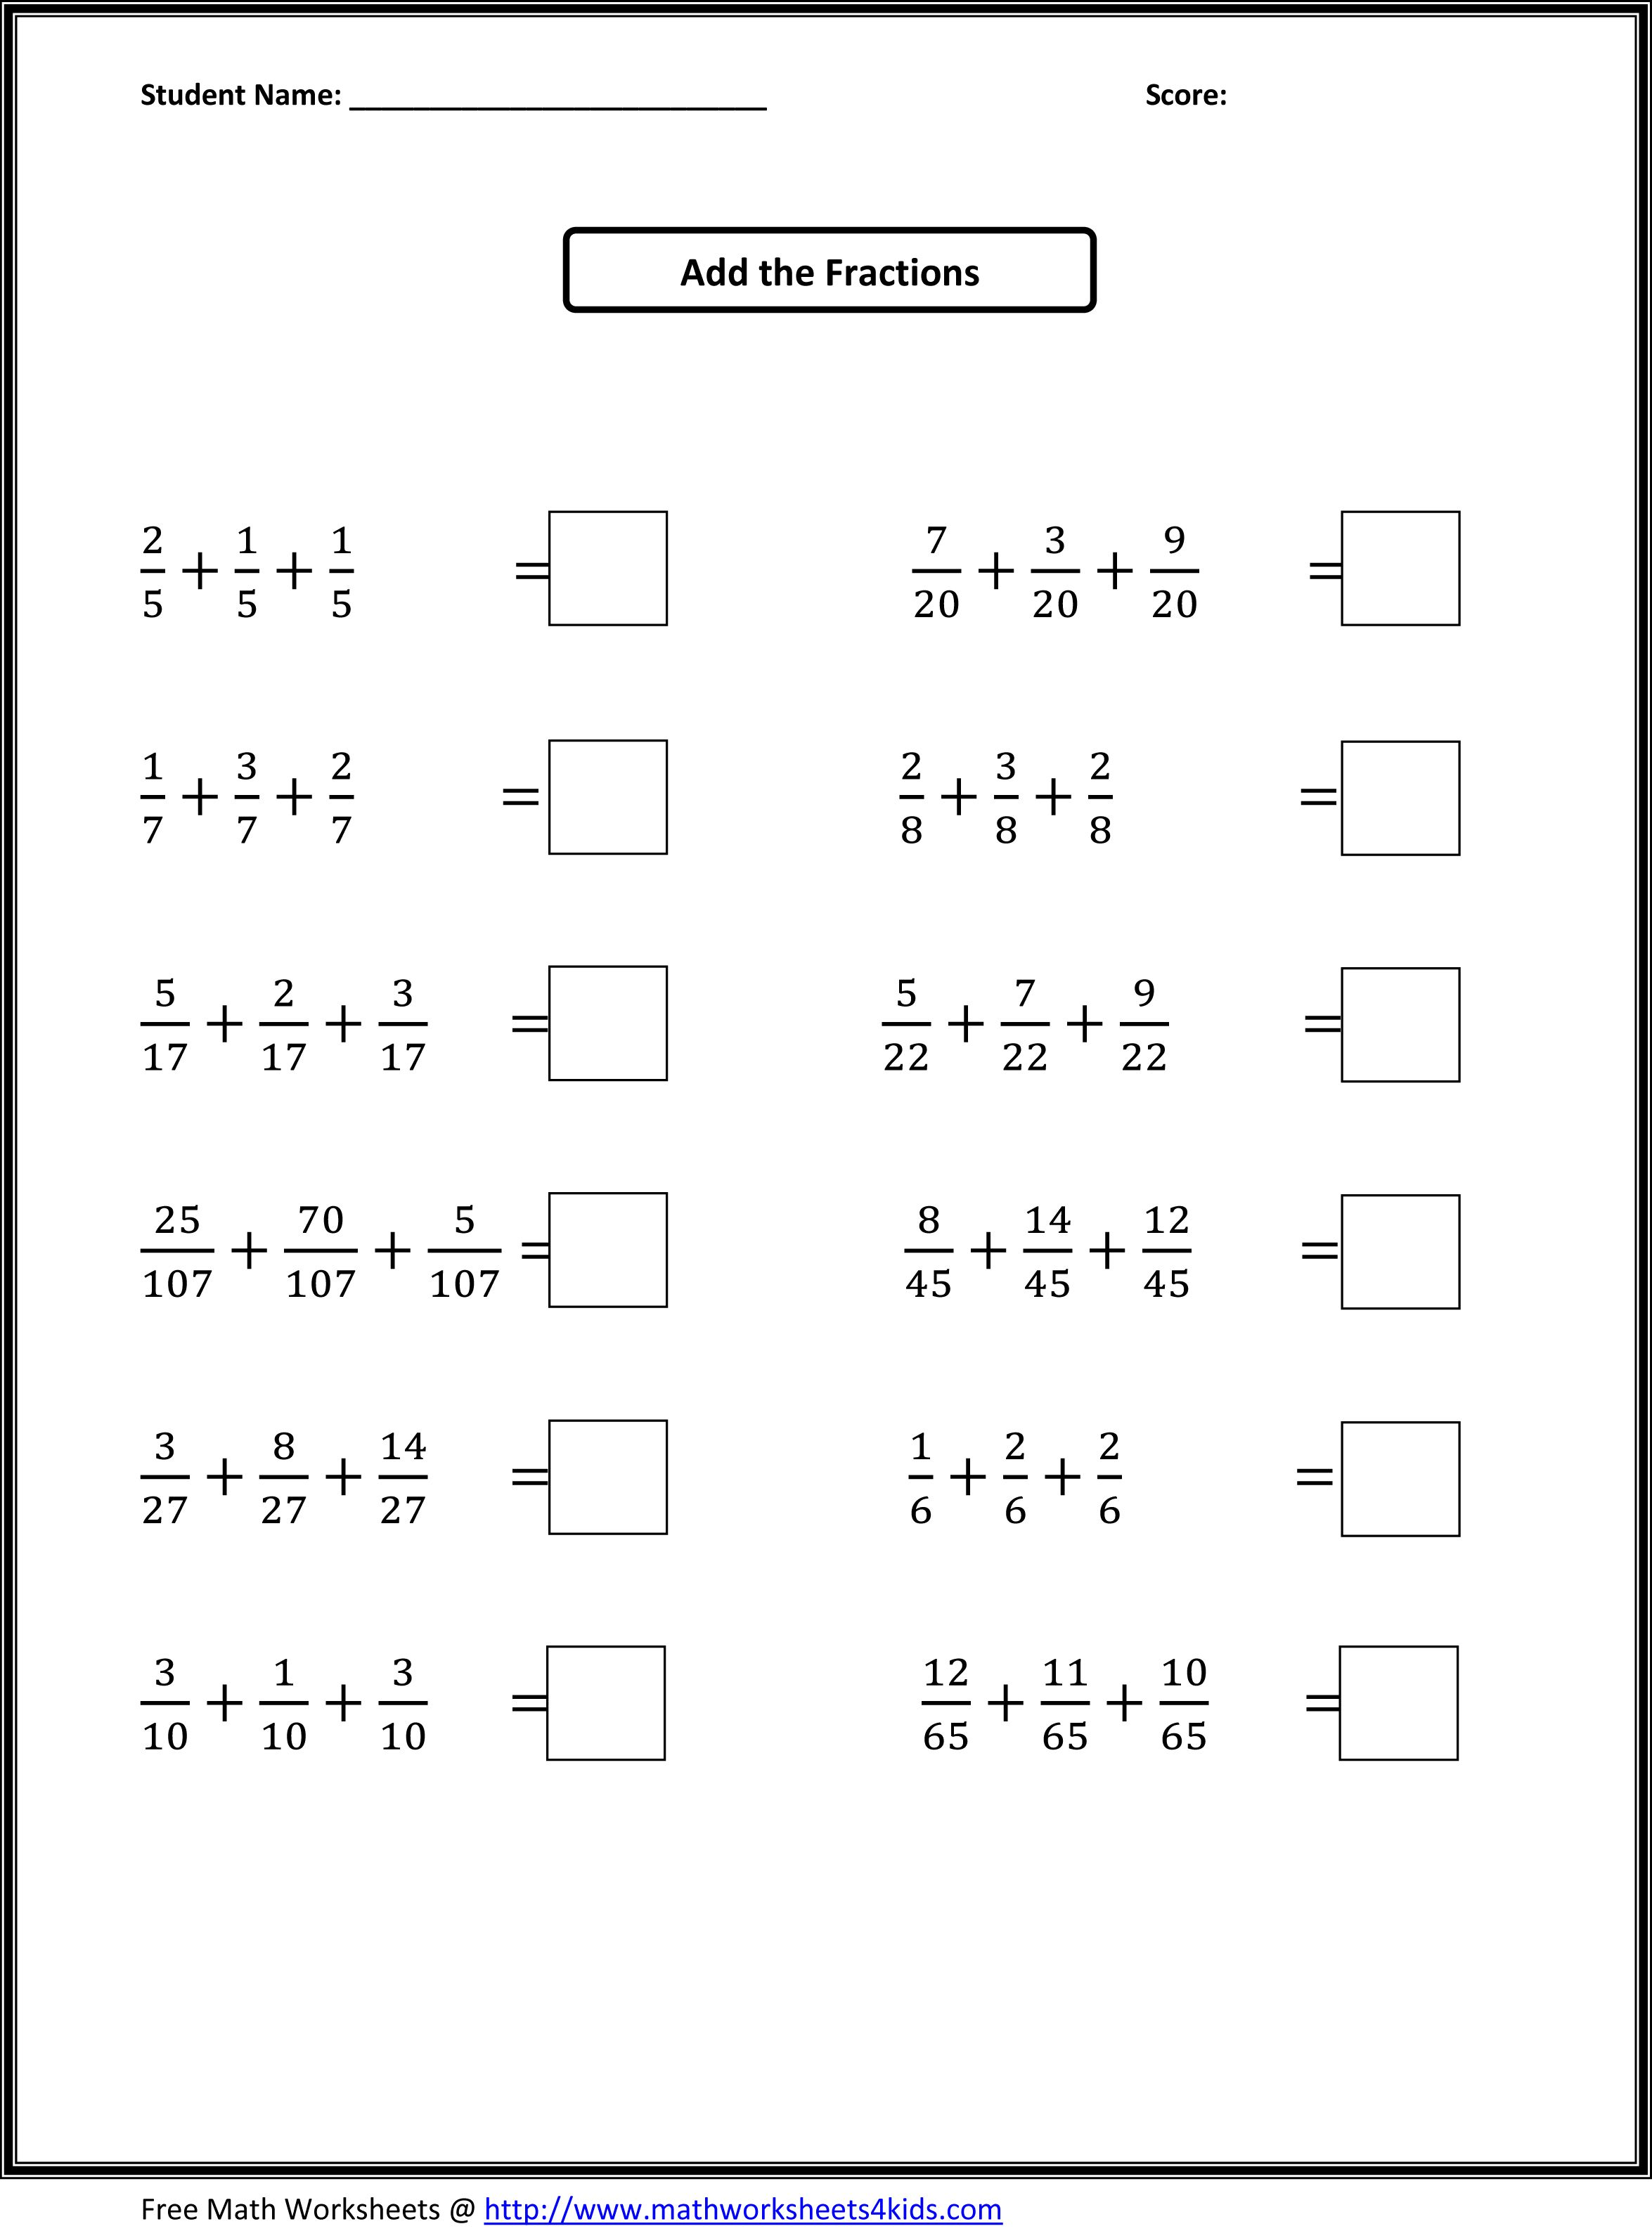 Worksheet Math Fourth Grade Worksheets 1000 images about math worksheets on pinterest 4th grade geometry and math